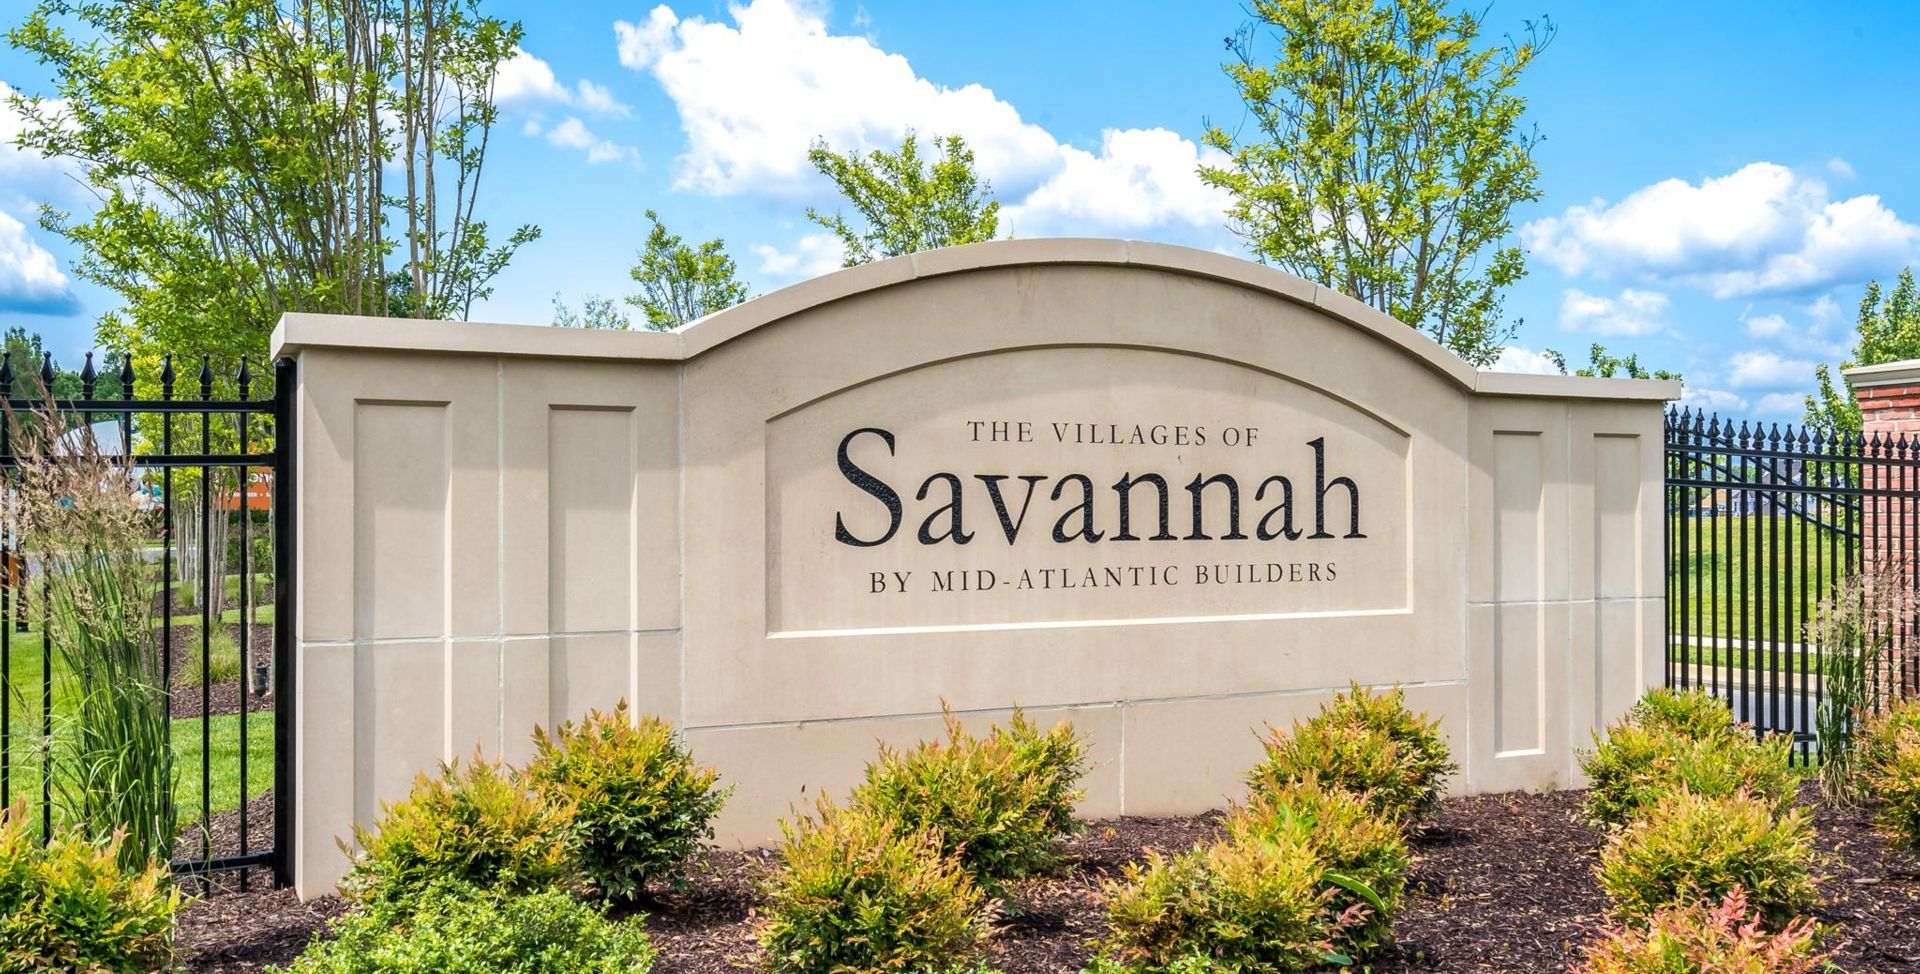 'The Villages of Savannah' by Mid-Atlantic Builders in Washington